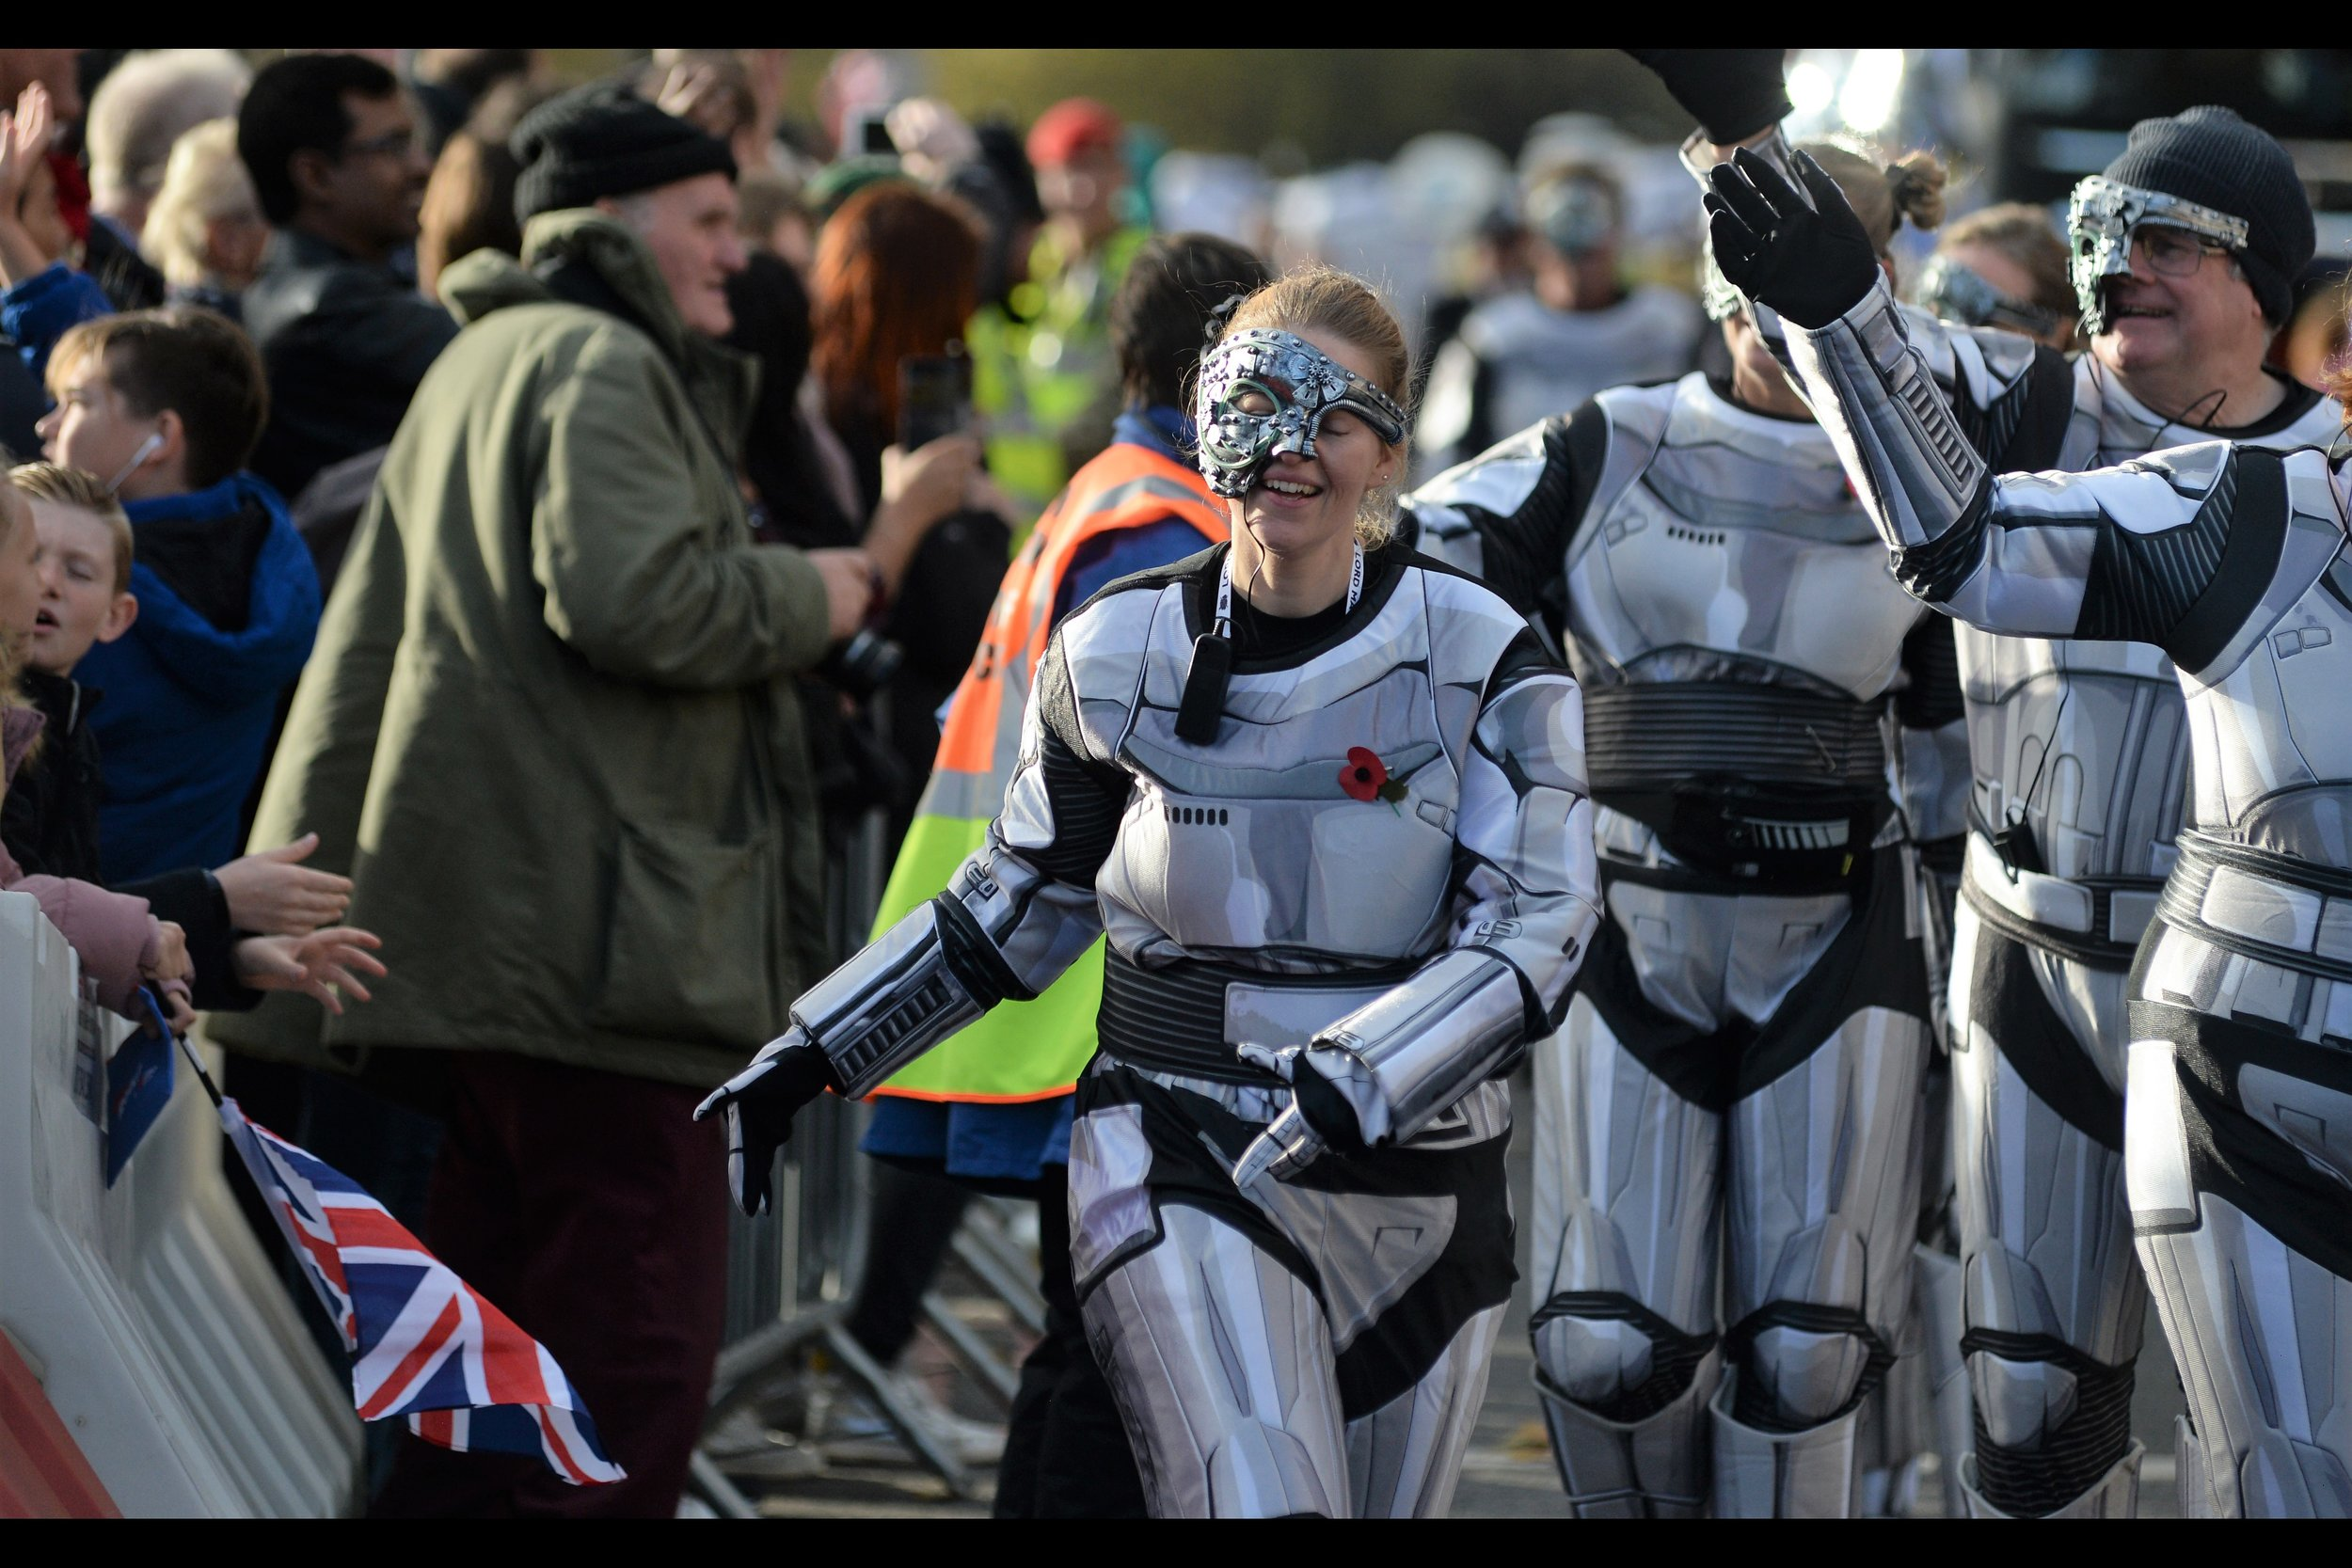 The worshipful company of cyborgs considers any raised hand, even for a high-five, an act of aggression that will be met with force.